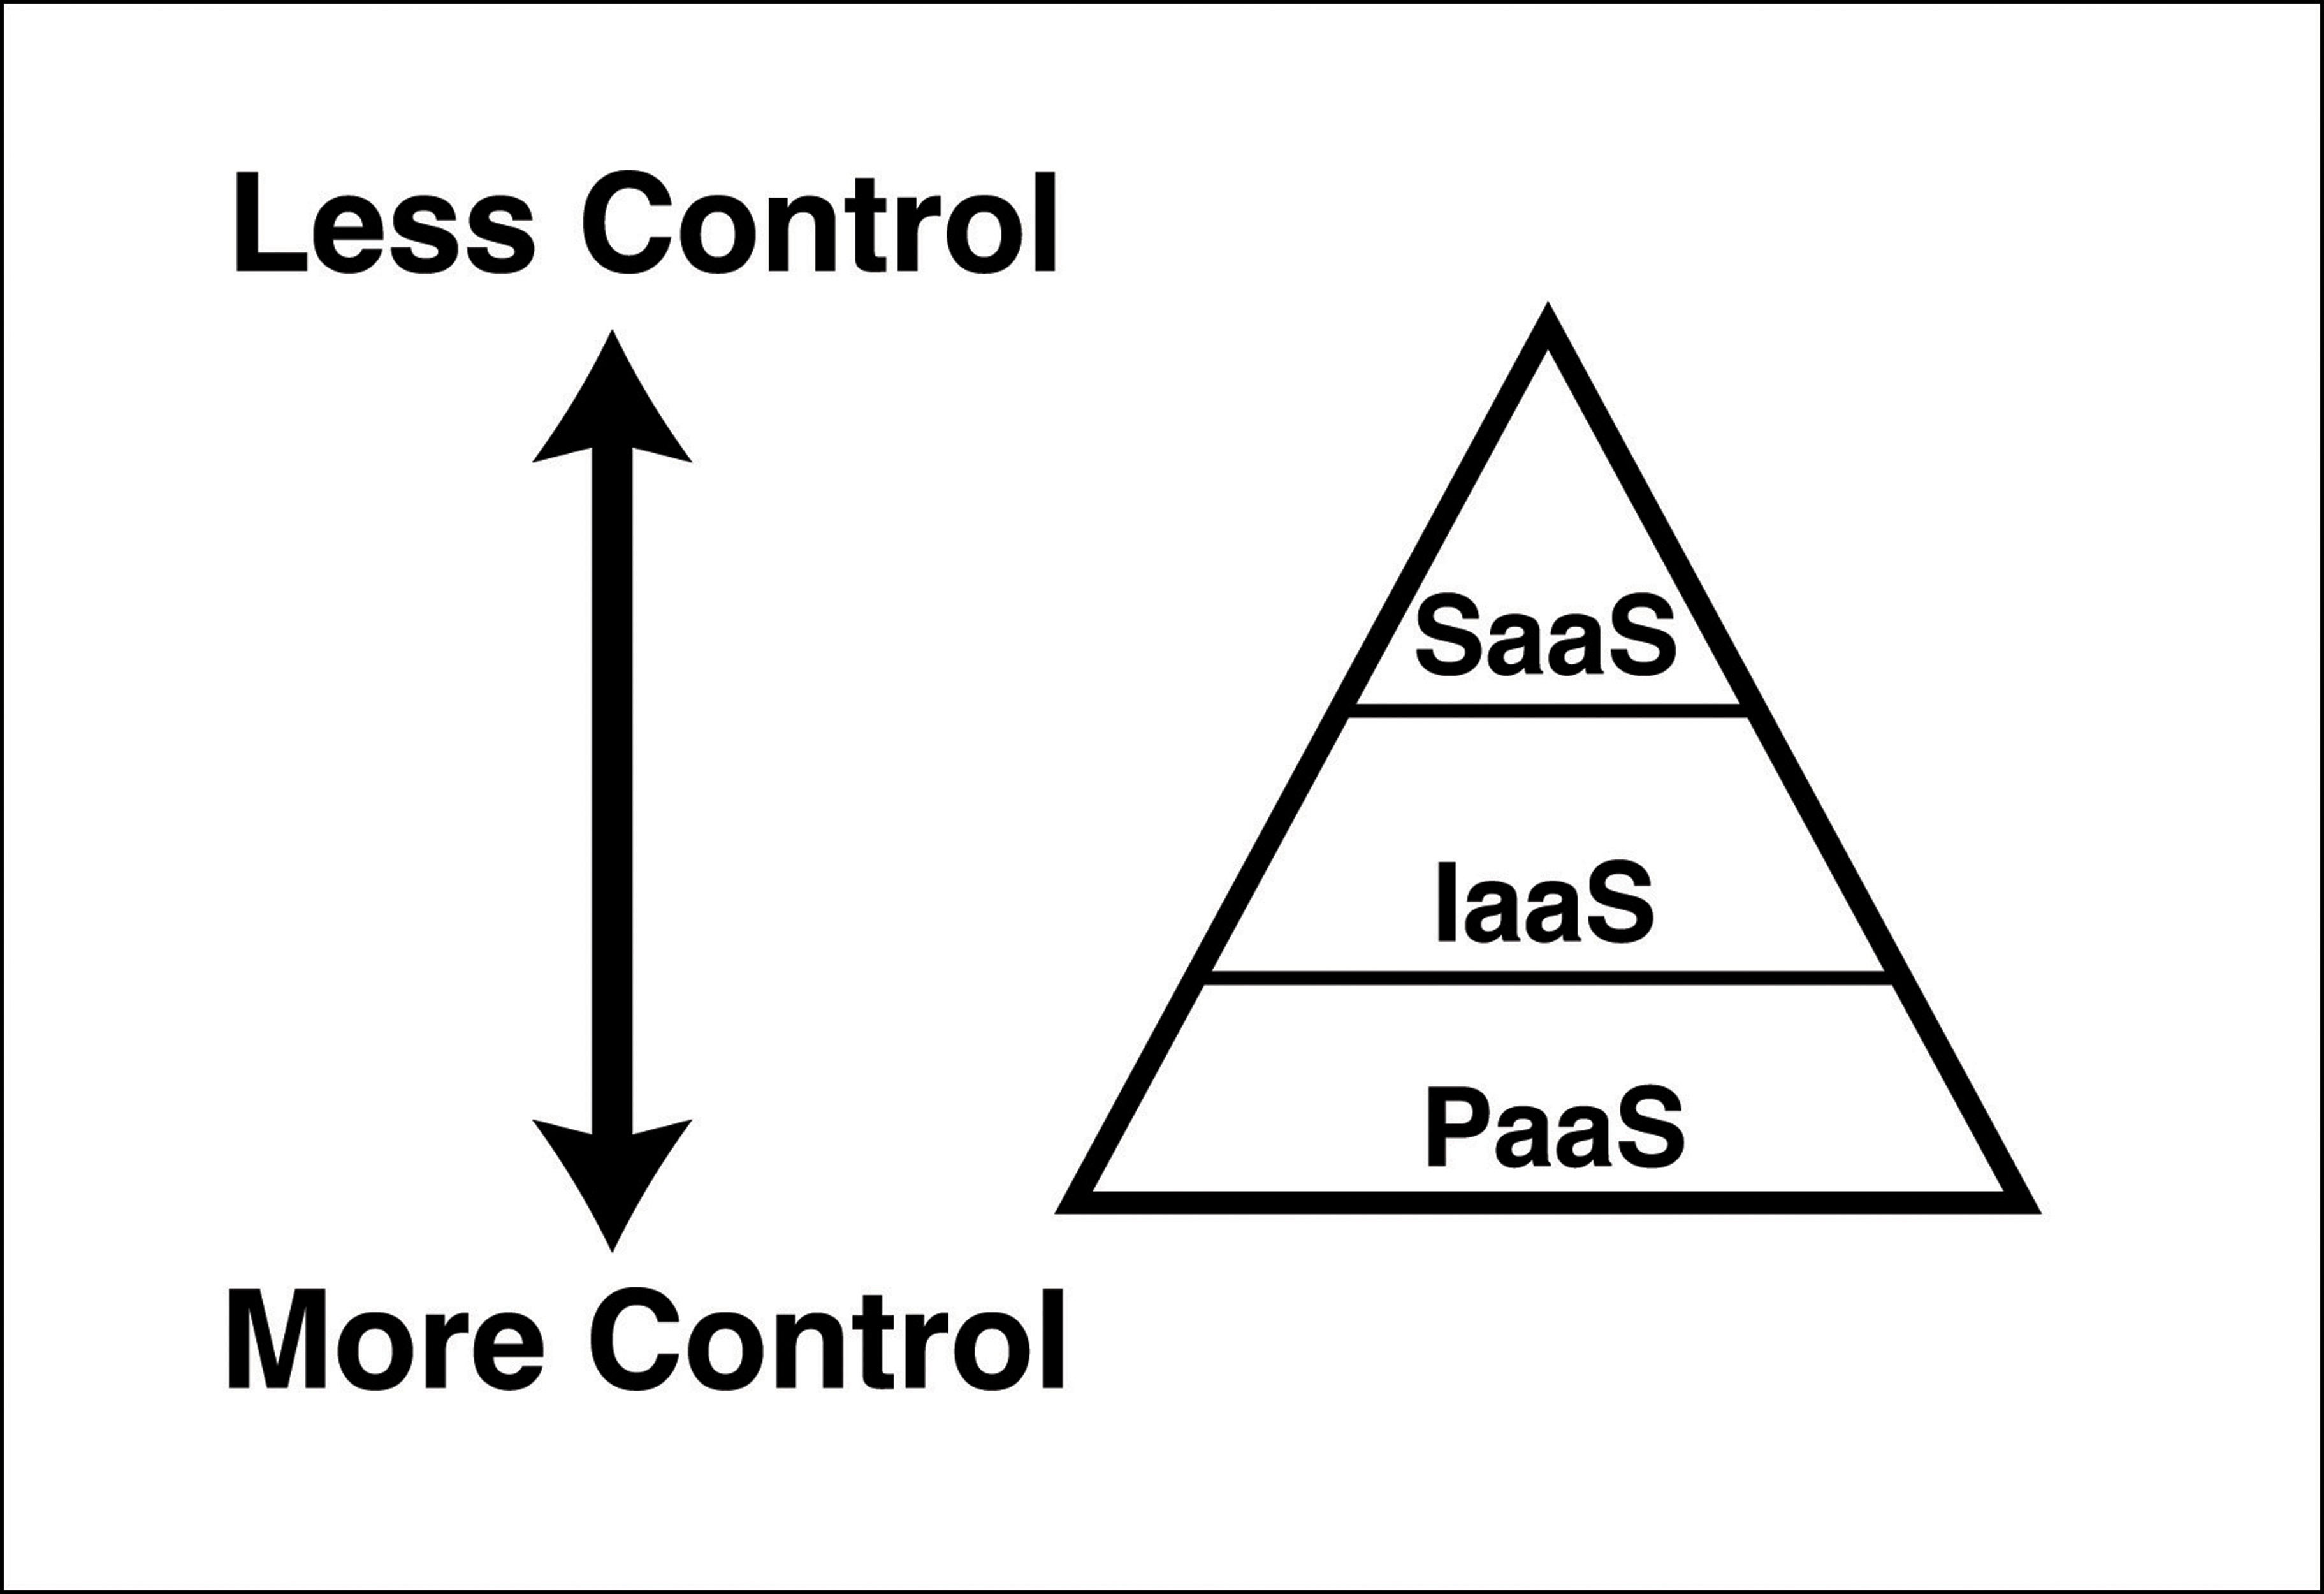 The cloud pyramid shows the relationship between service types and the amount of control a user has.